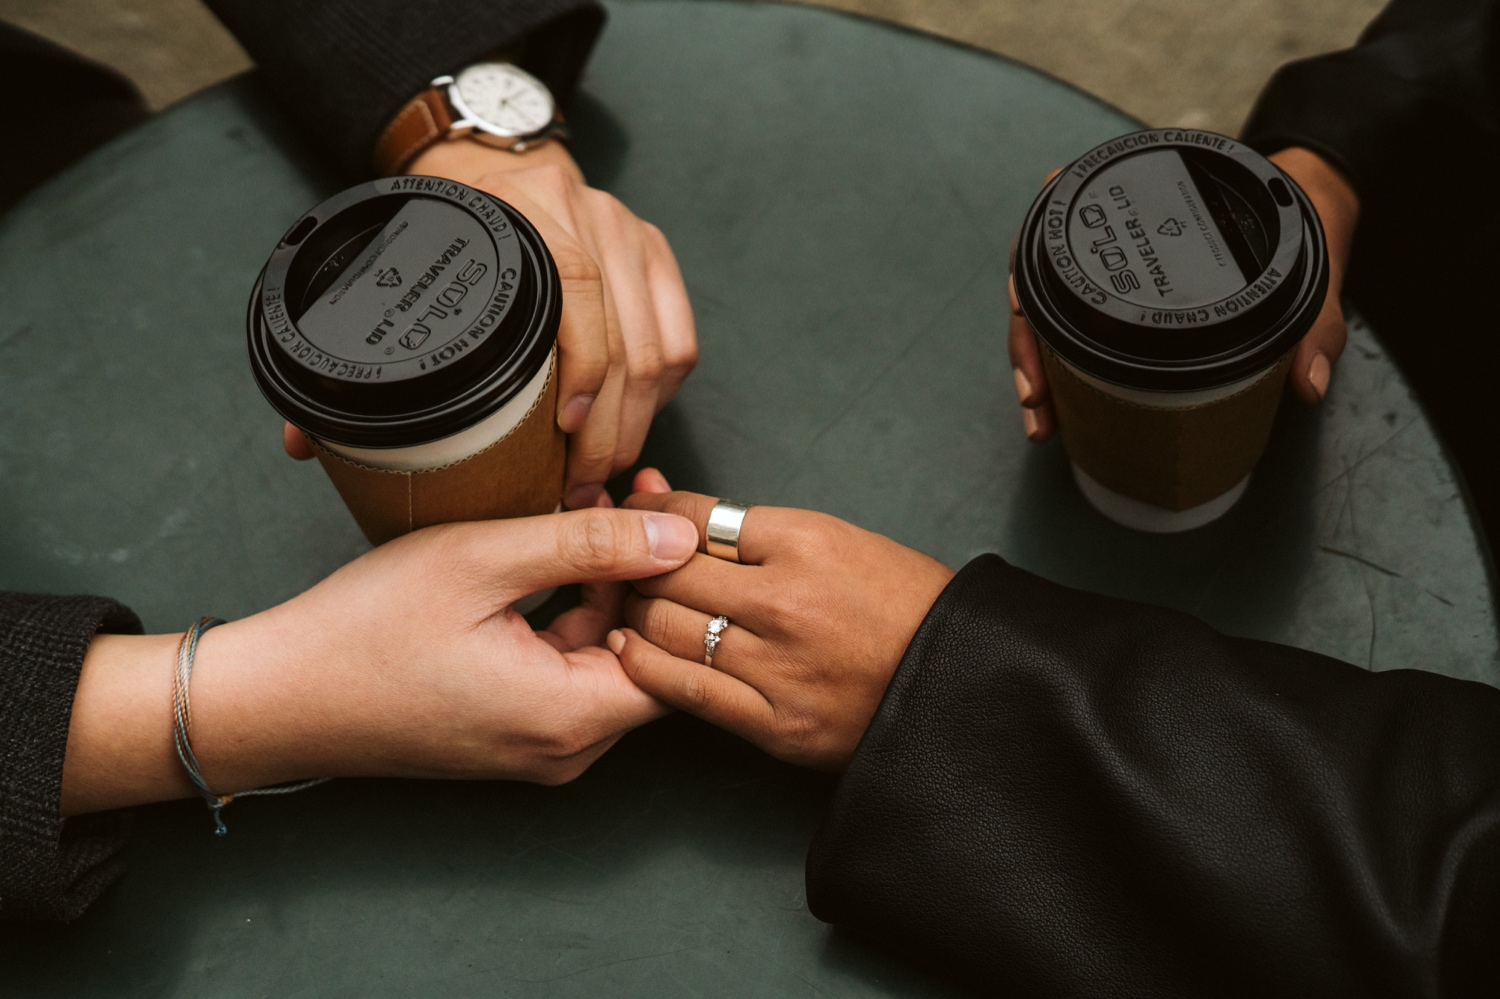 photo of fiance's holding hands across a table. Woman has engagement ring on her hand.